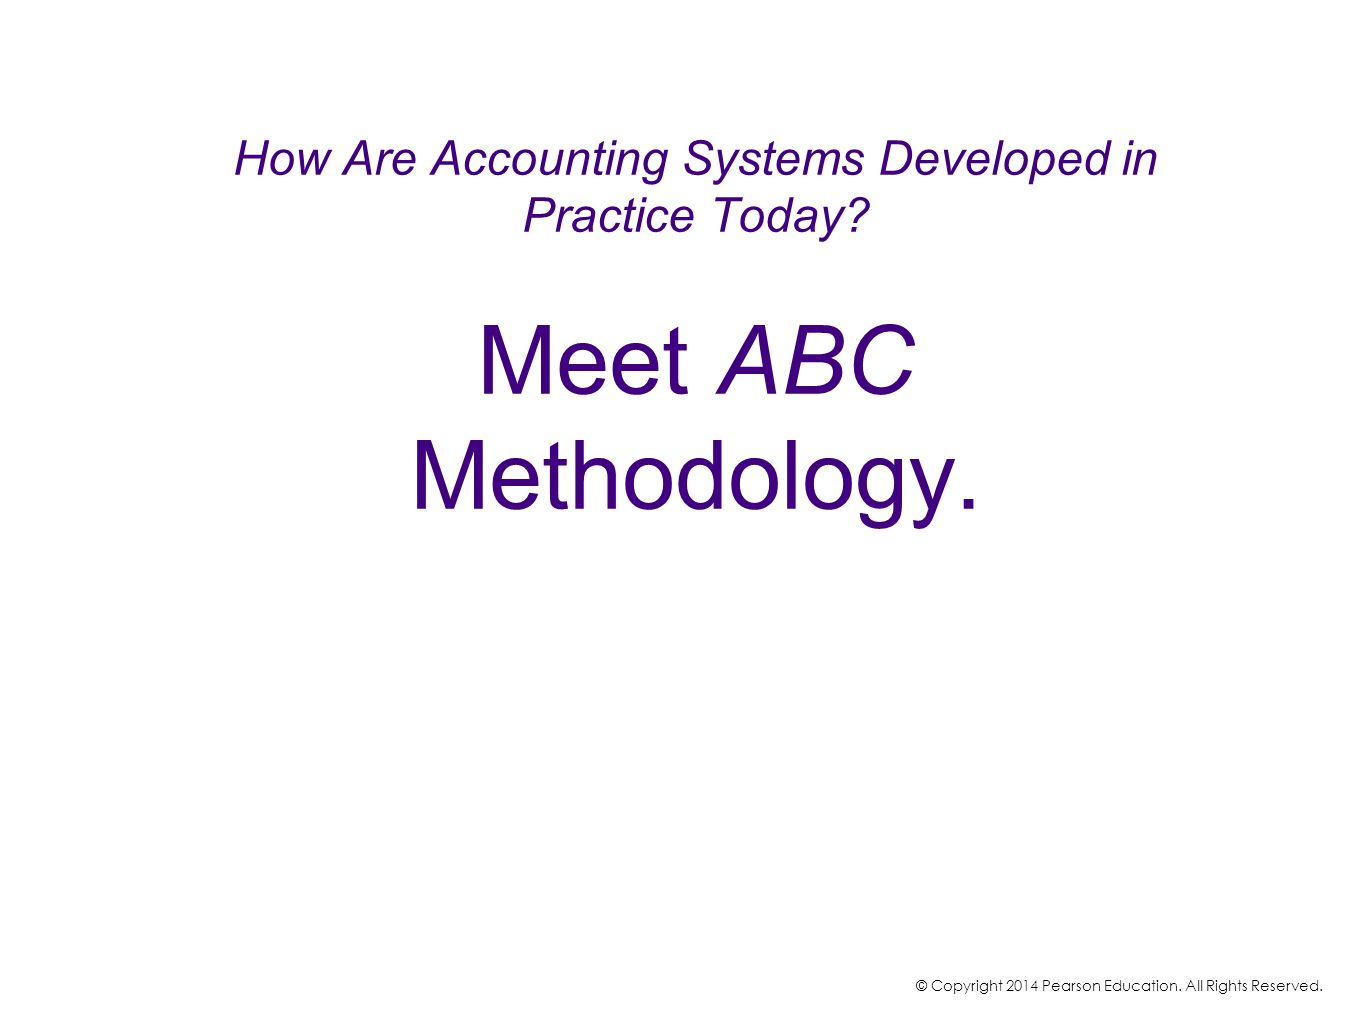 How Are Accounting Systems Developed in Practice Today? Meet ABC Methodology. © Copyright 2014 Pearson Education. All Rights Reserved.